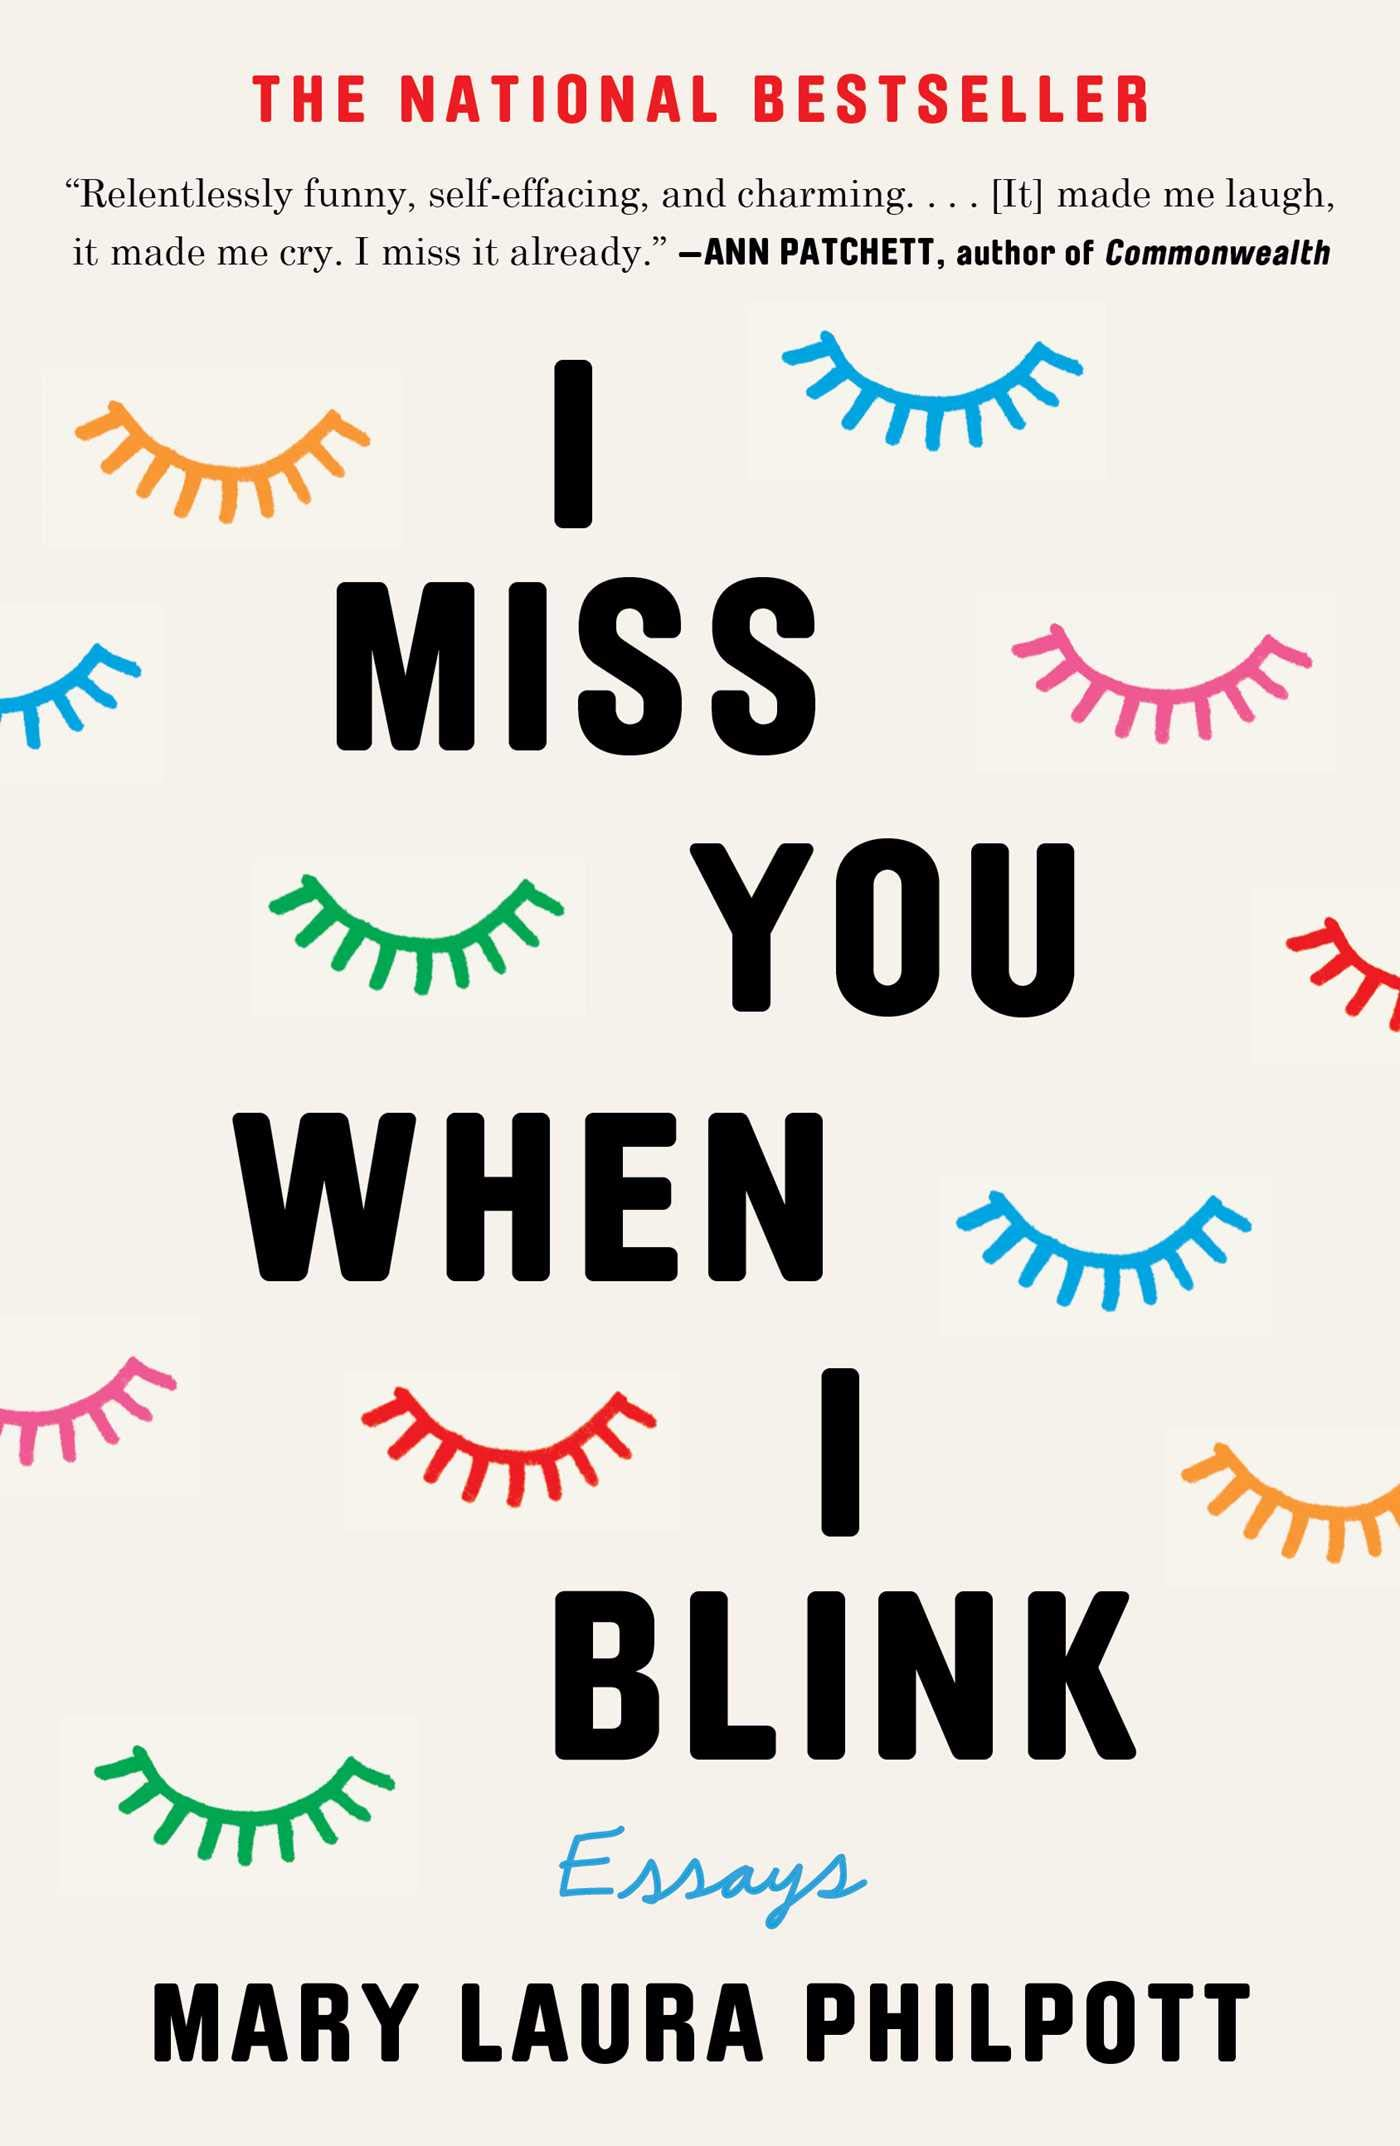 I-Miss-You-When-I-Blink-Mary-Laura-Philpott